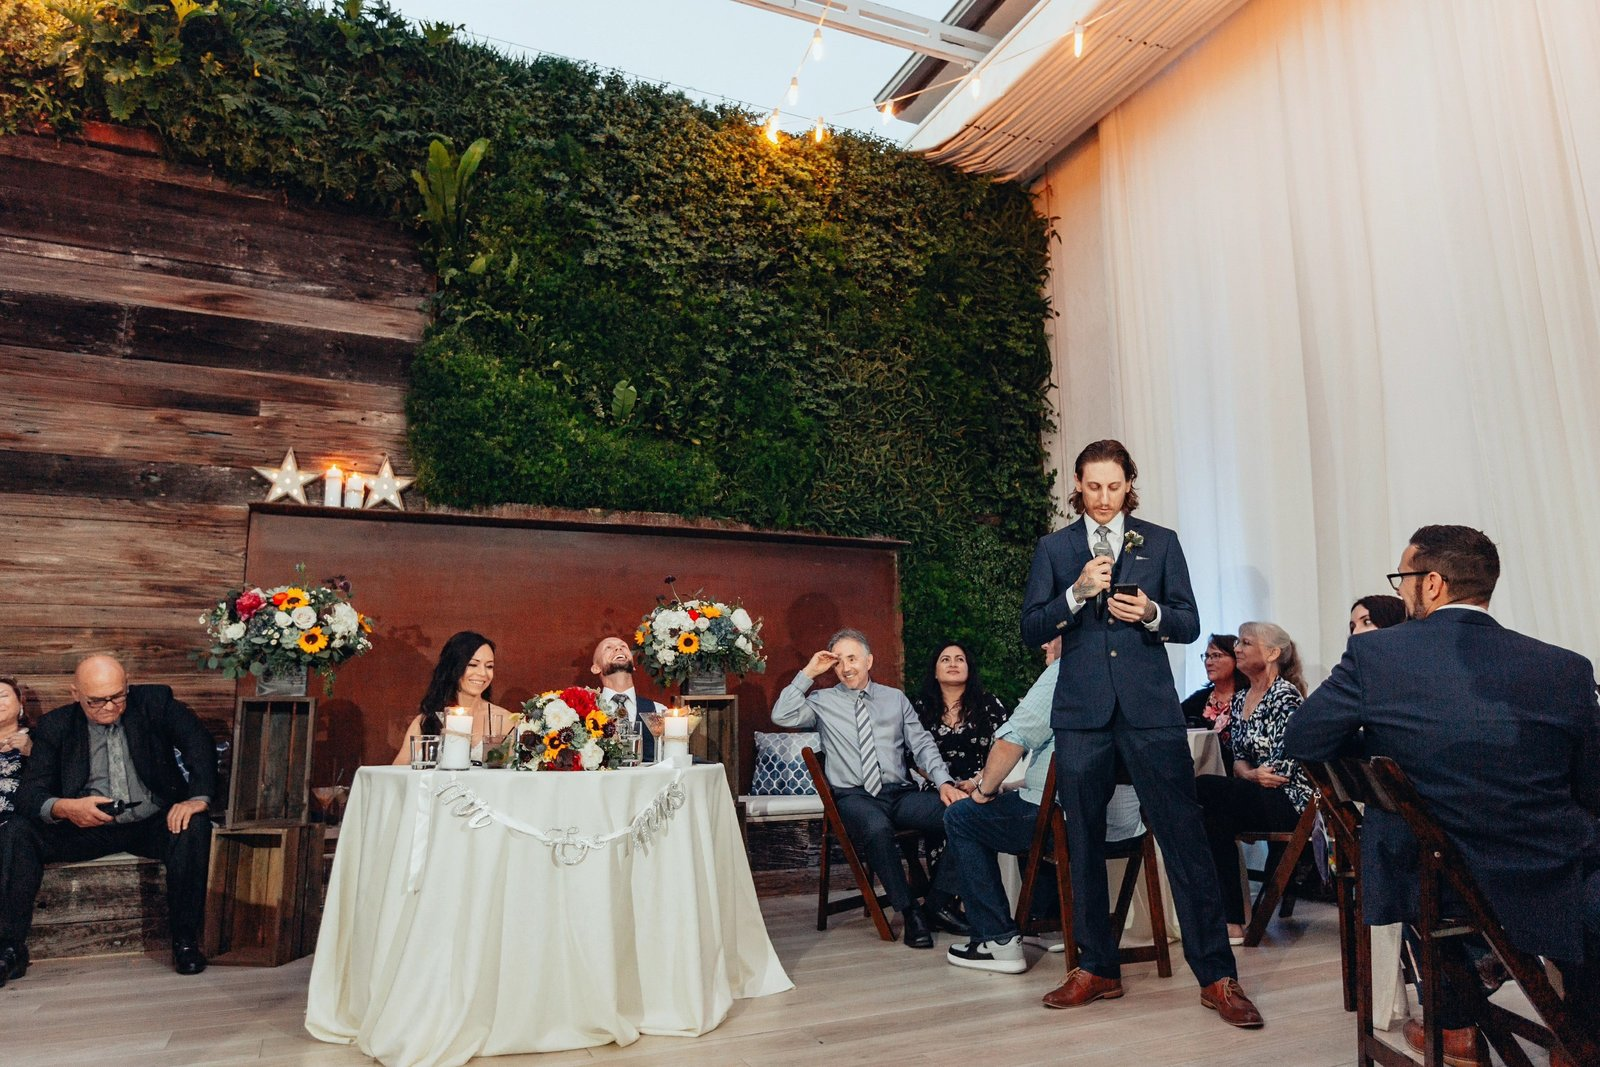 741hotel-laguna-beach-wedding69